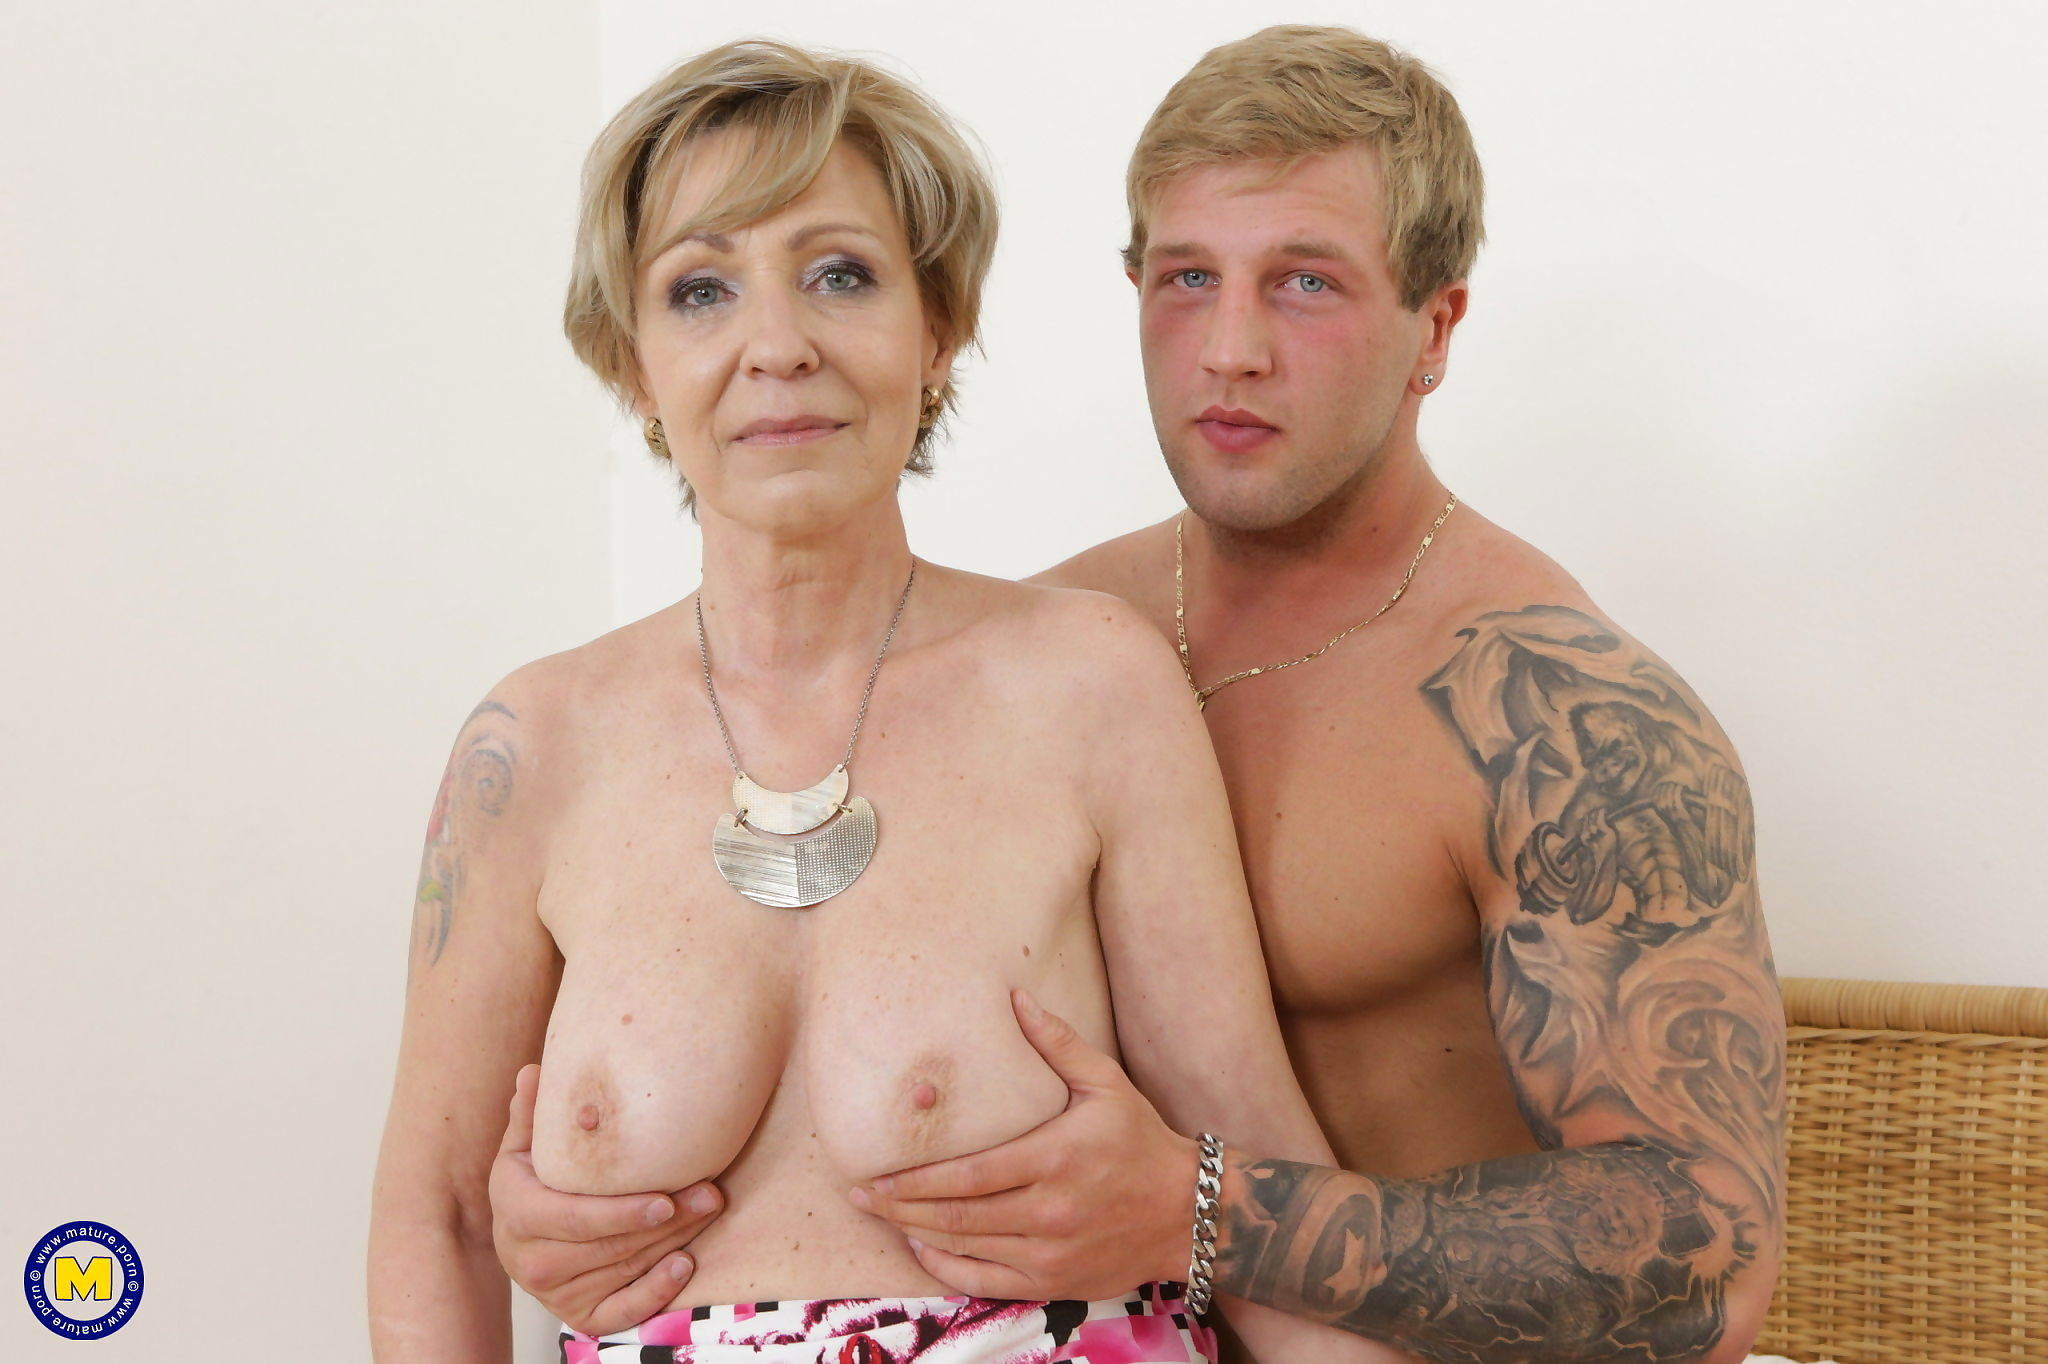 Horny mature lady fooling around with a muscular toy boy - part 2741